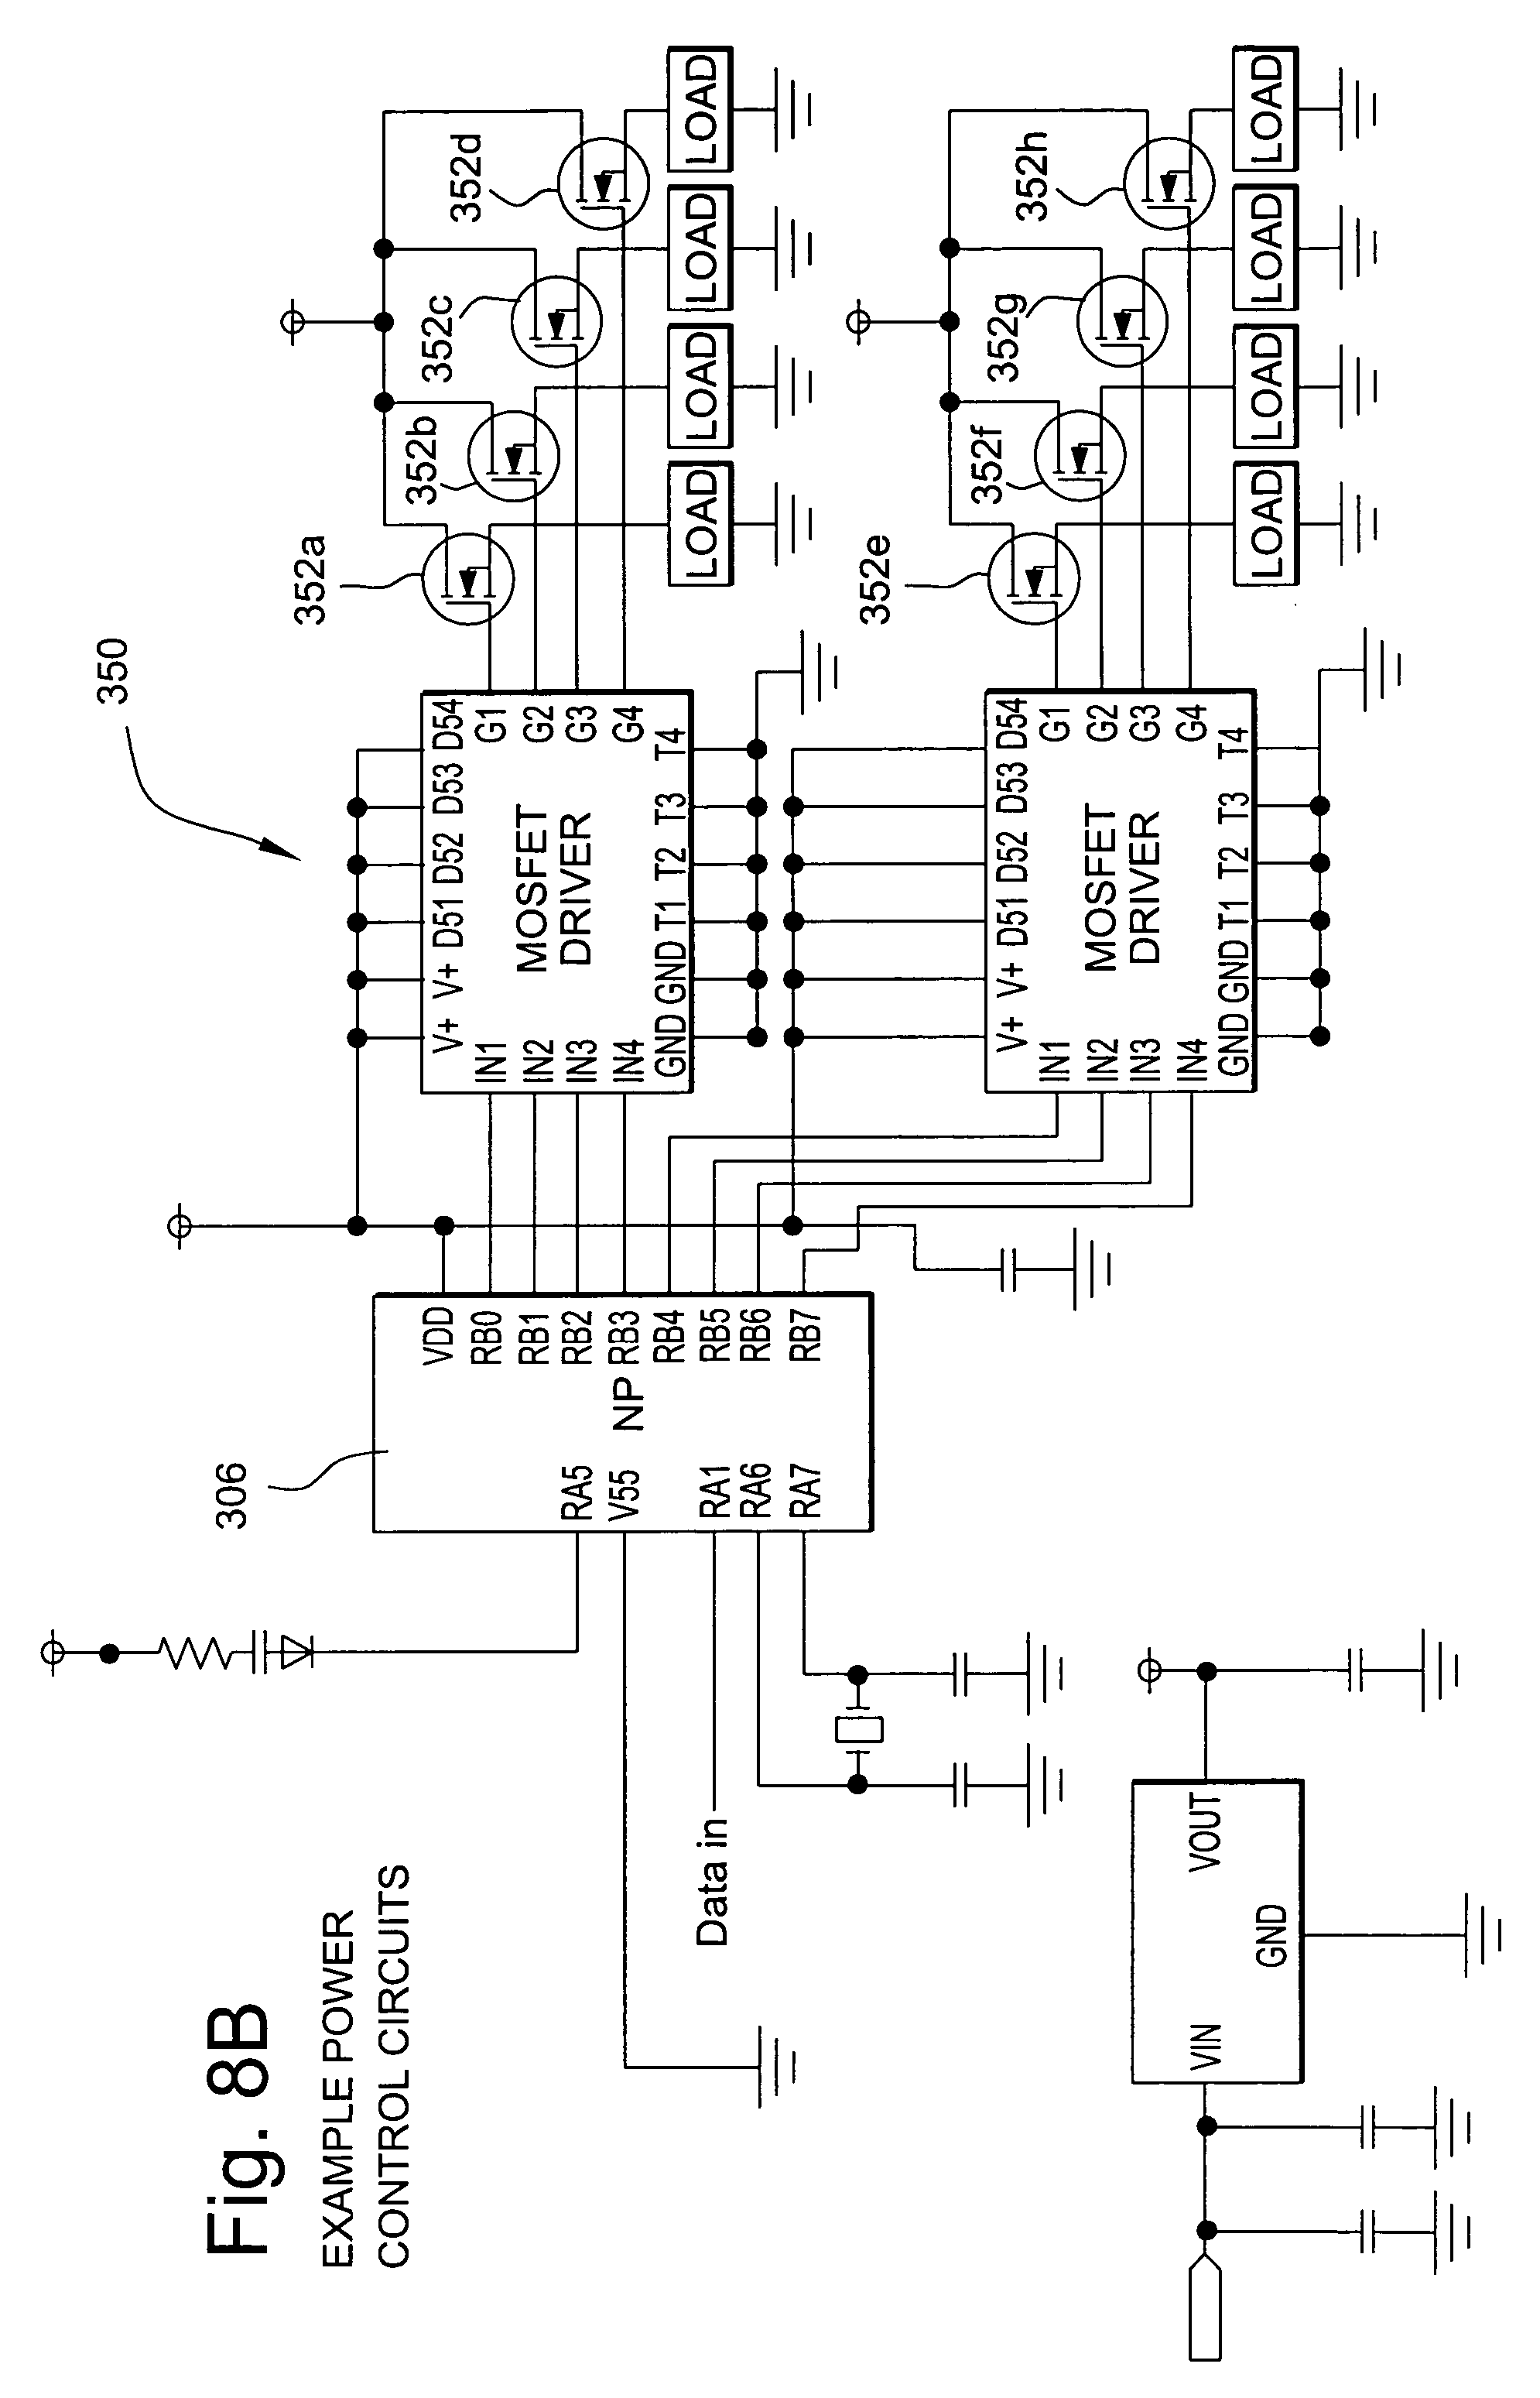 Advance Mixer Wiring Diagram 28 Images Dough Electrical Load Center Us07304567 20071204 D00010resize